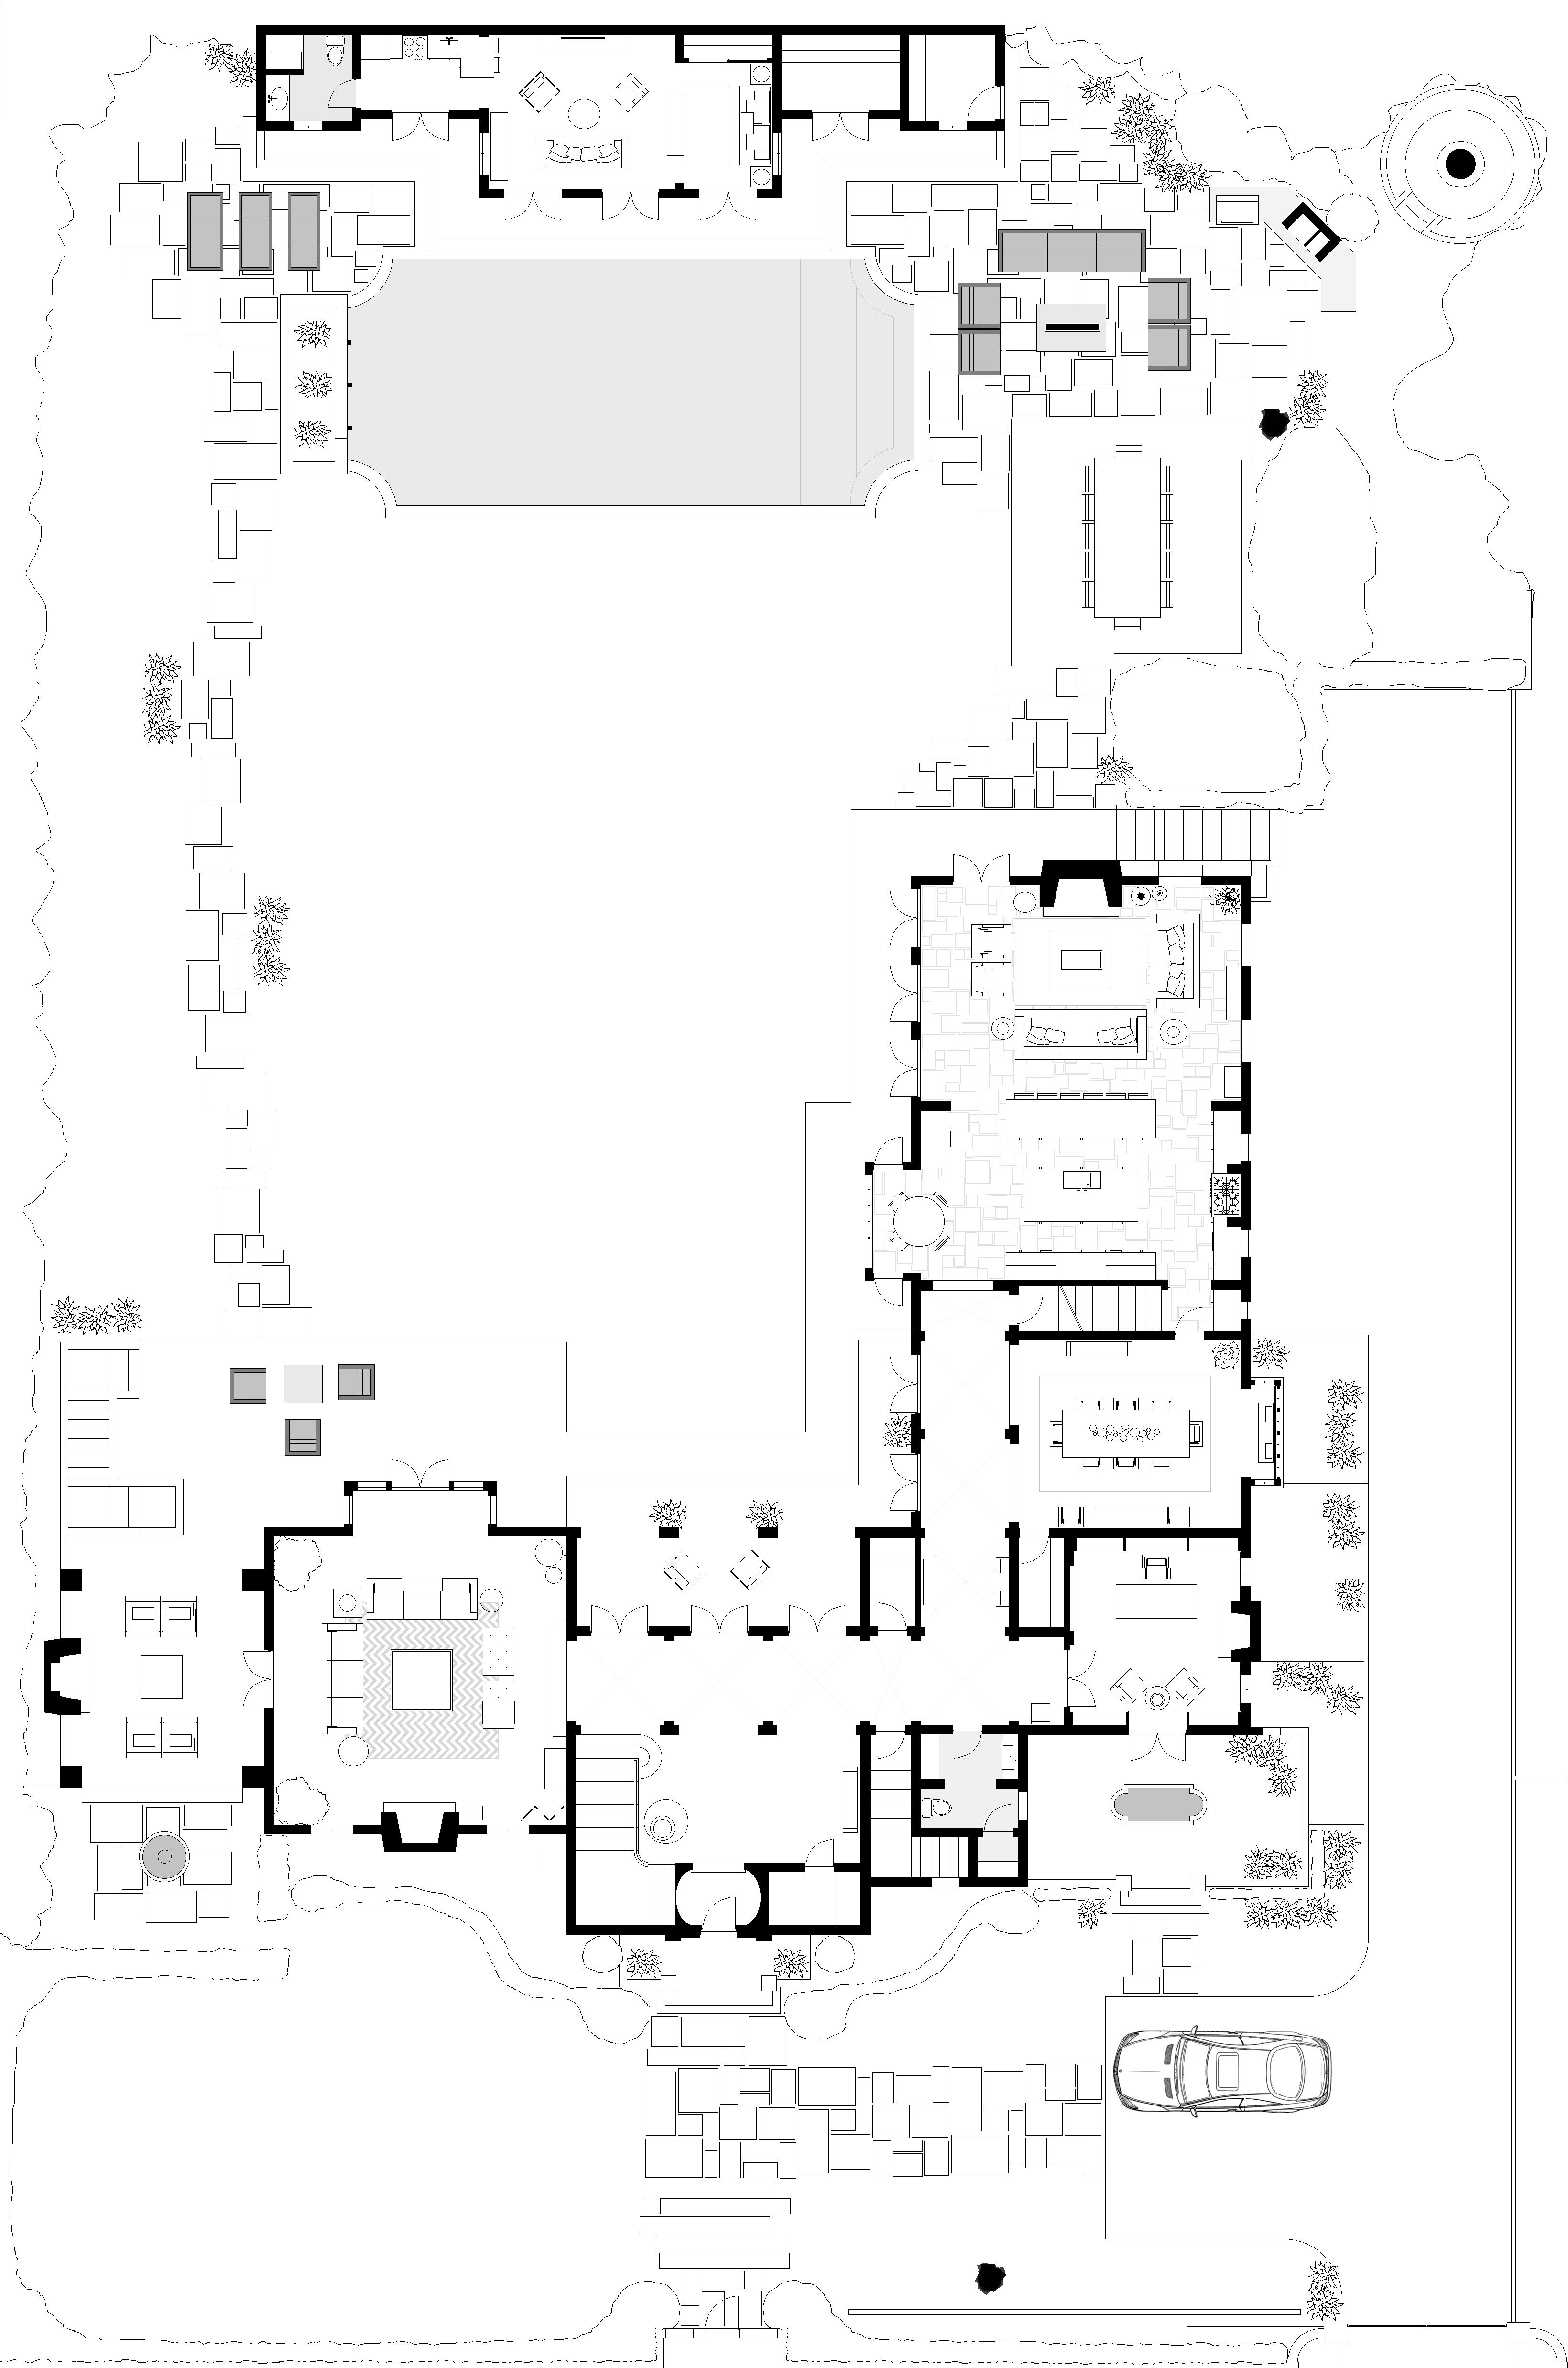 first floor plan living room entry hall library dining room kitchen family room terrace. Black Bedroom Furniture Sets. Home Design Ideas